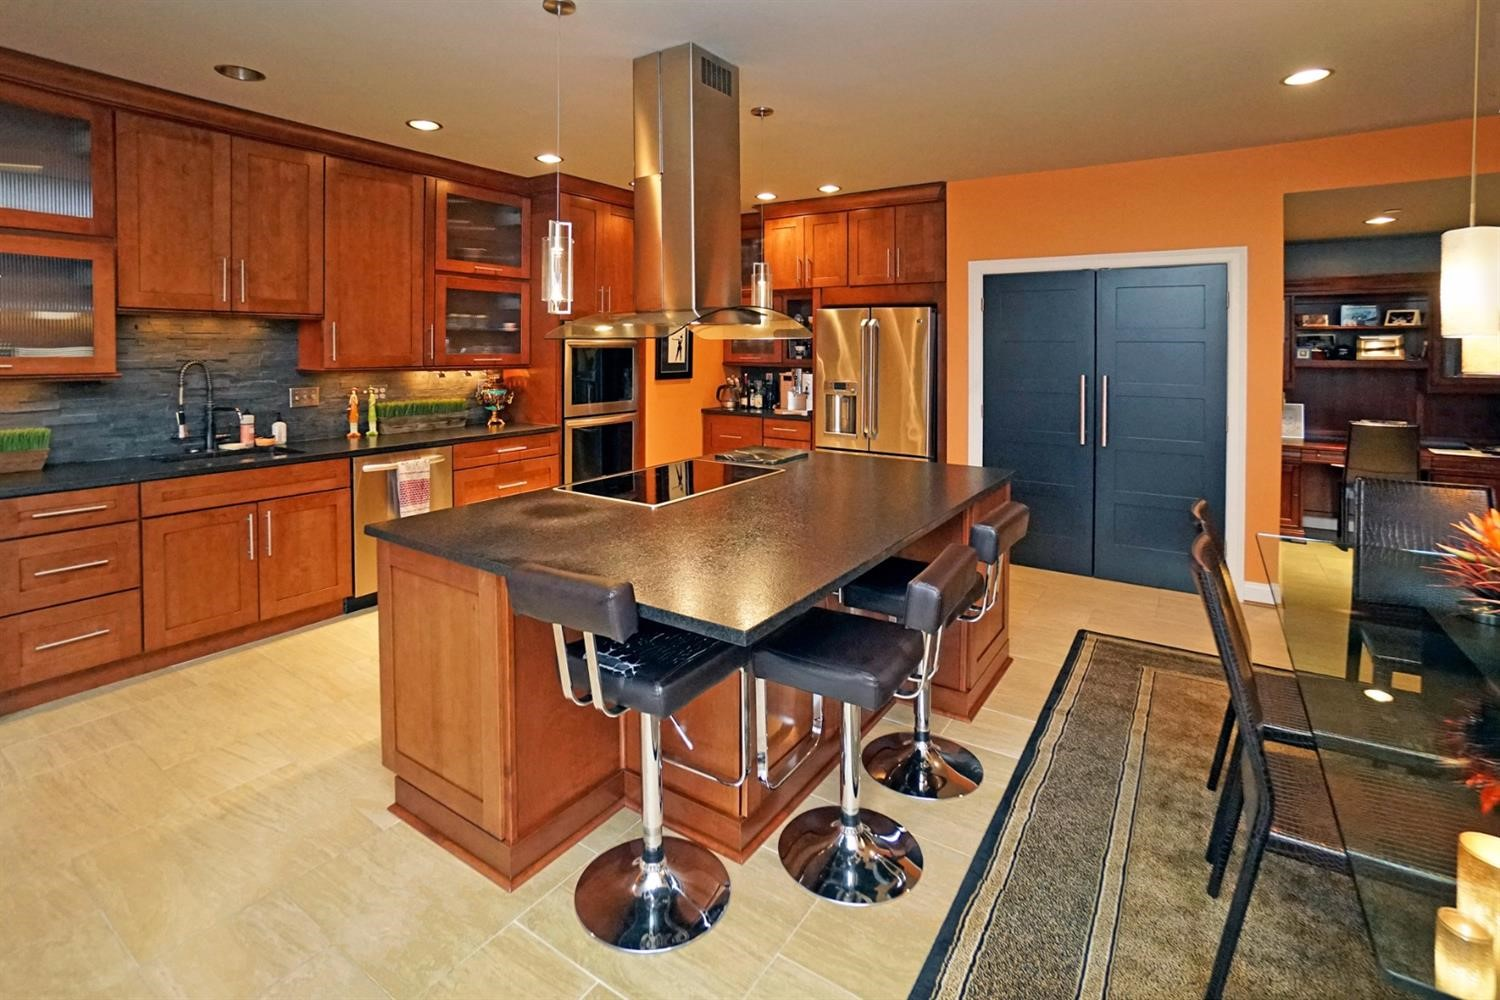 used kitchen cabinets cincinnati ohio kitchen cabinets cincinnati